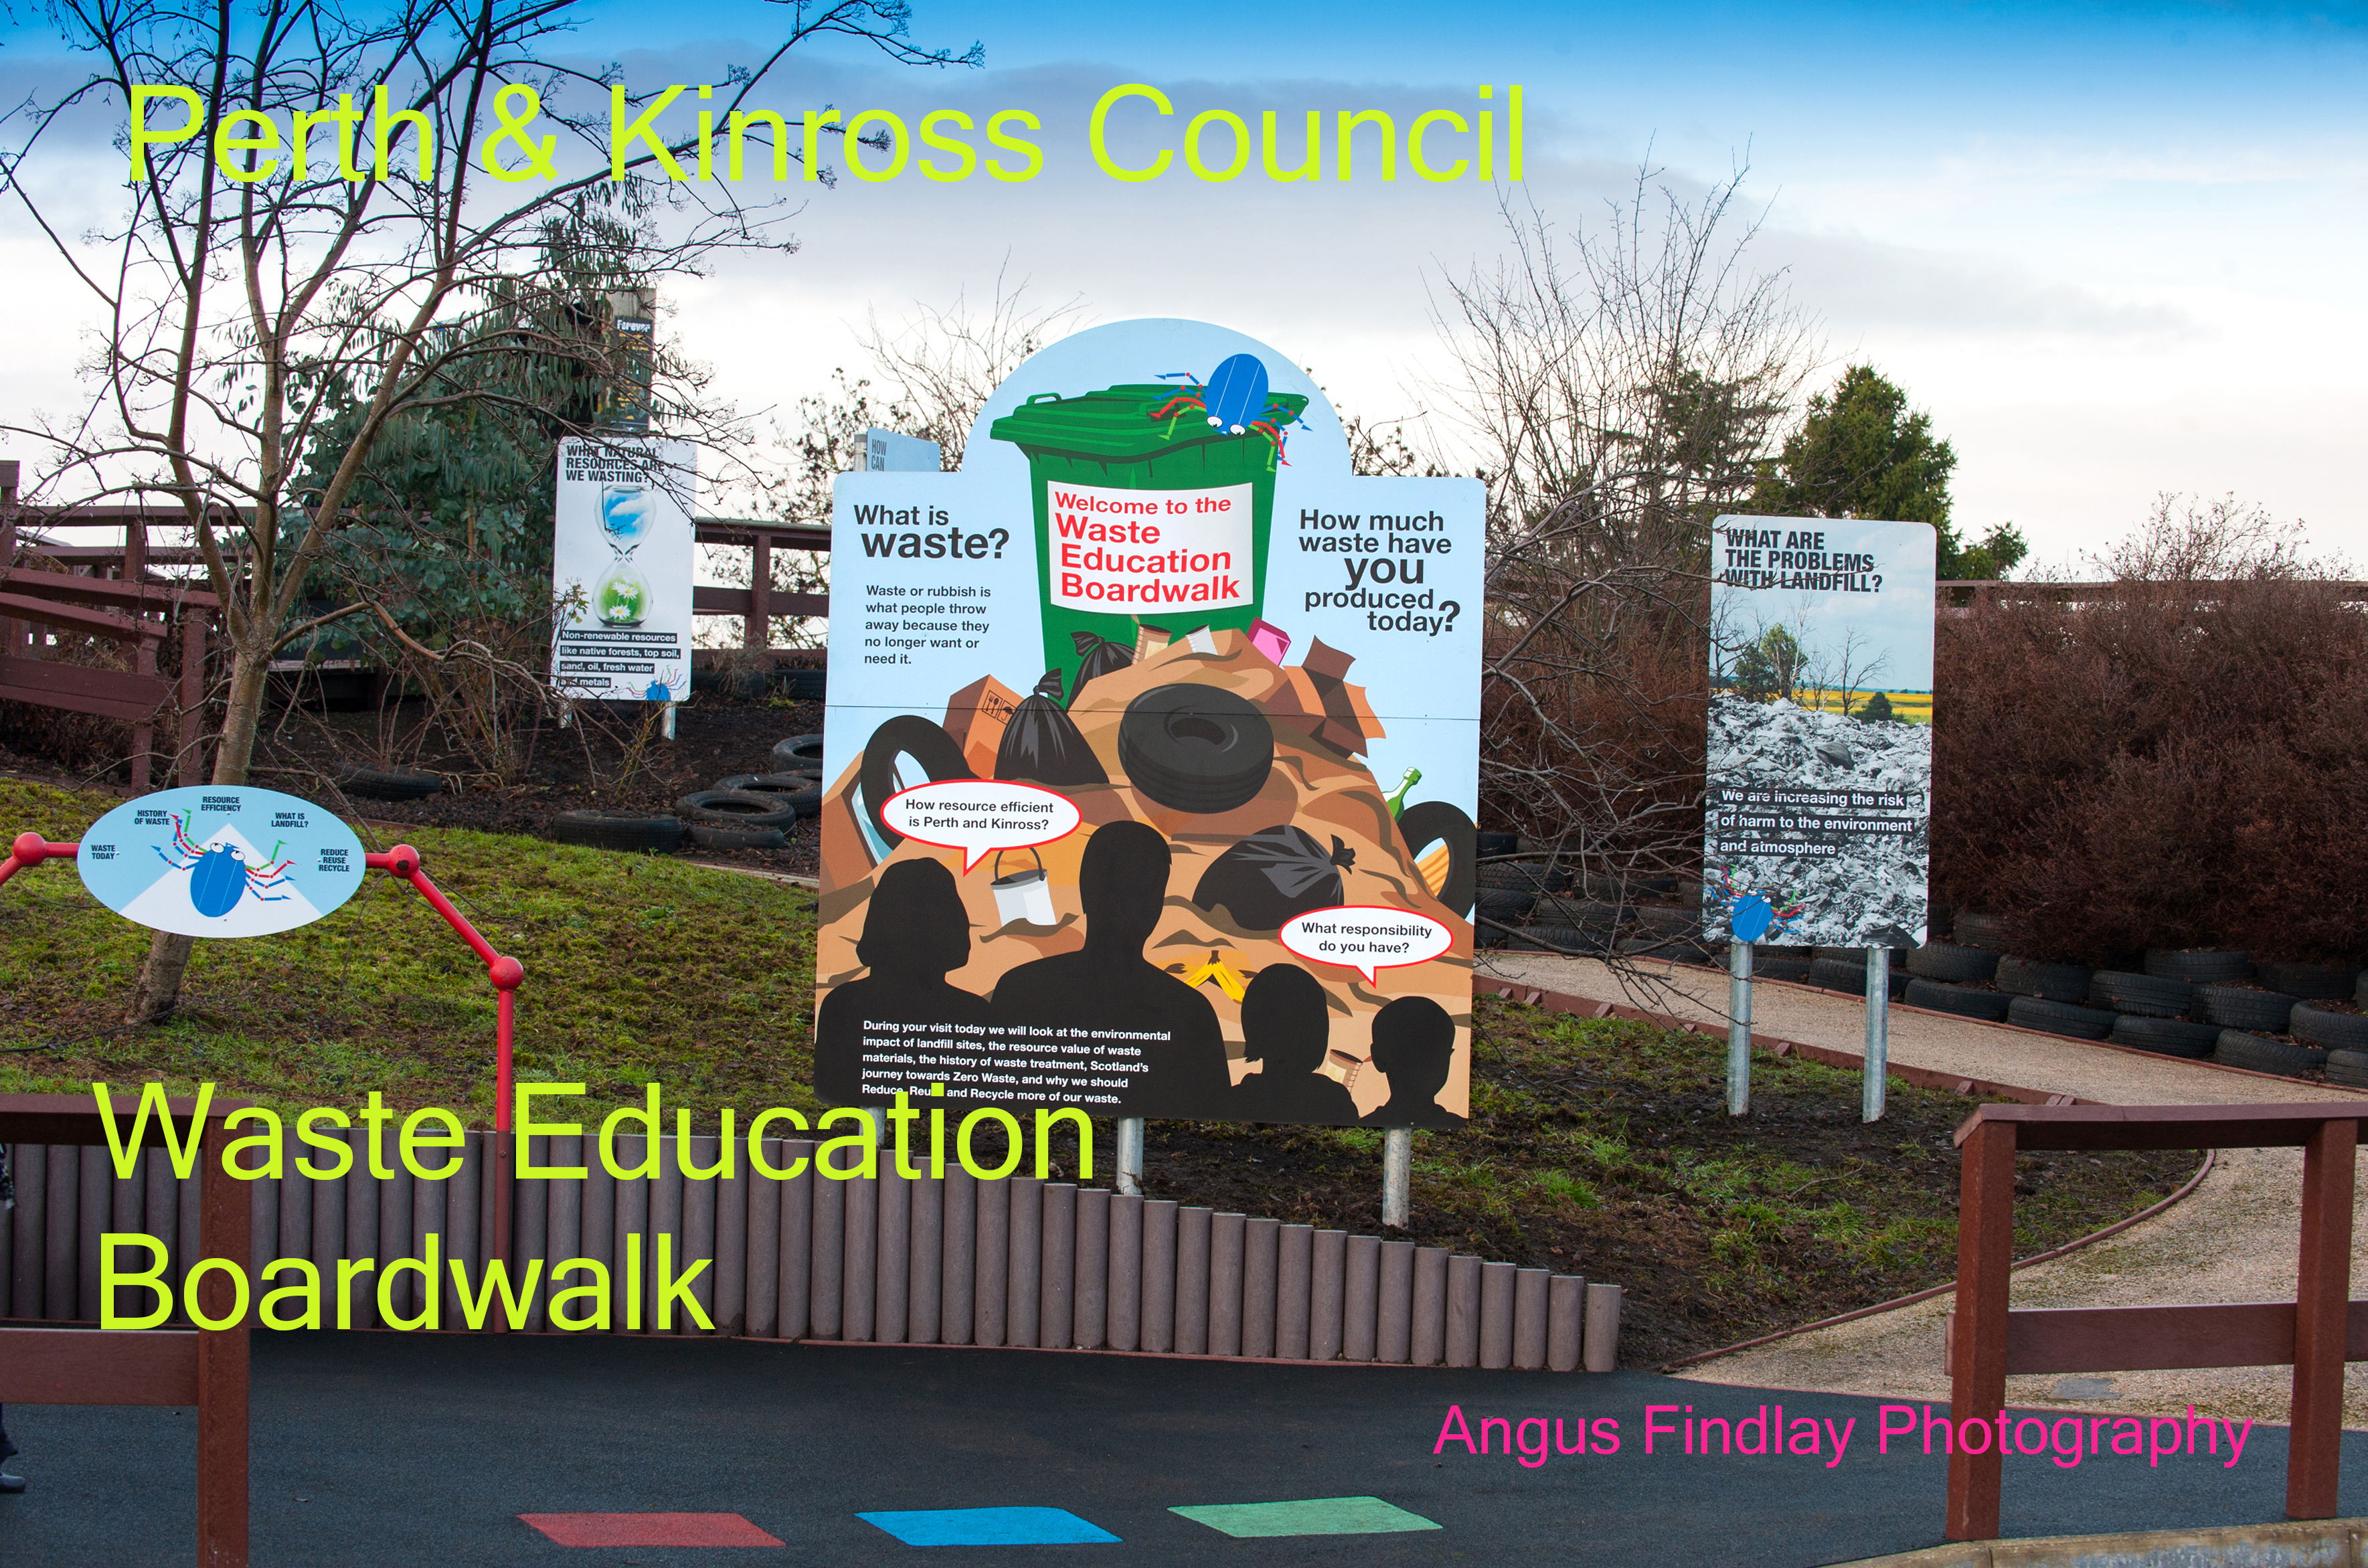 Friarton recycling centre waste education boardwalk for Household waste recycling centre design